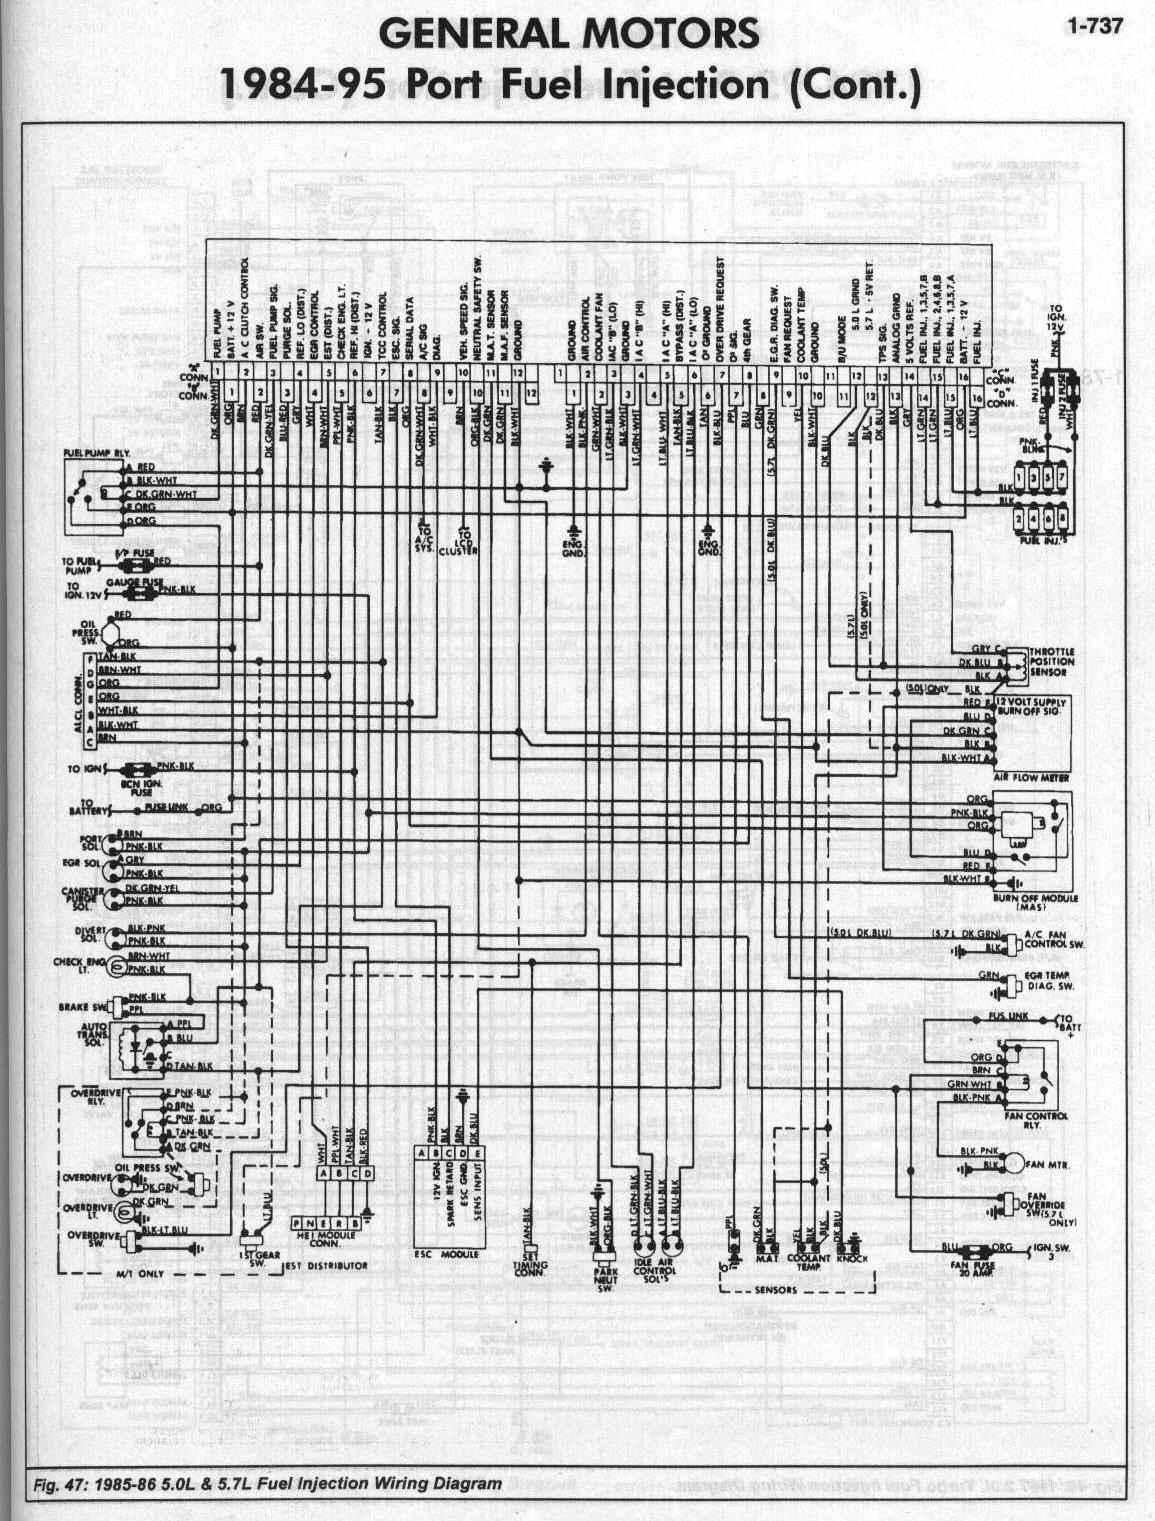 1985 camaro fuse diagram wiring diagram mega 1985 camaro wiring diagram data wiring diagram 1985 camaro fuse diagram